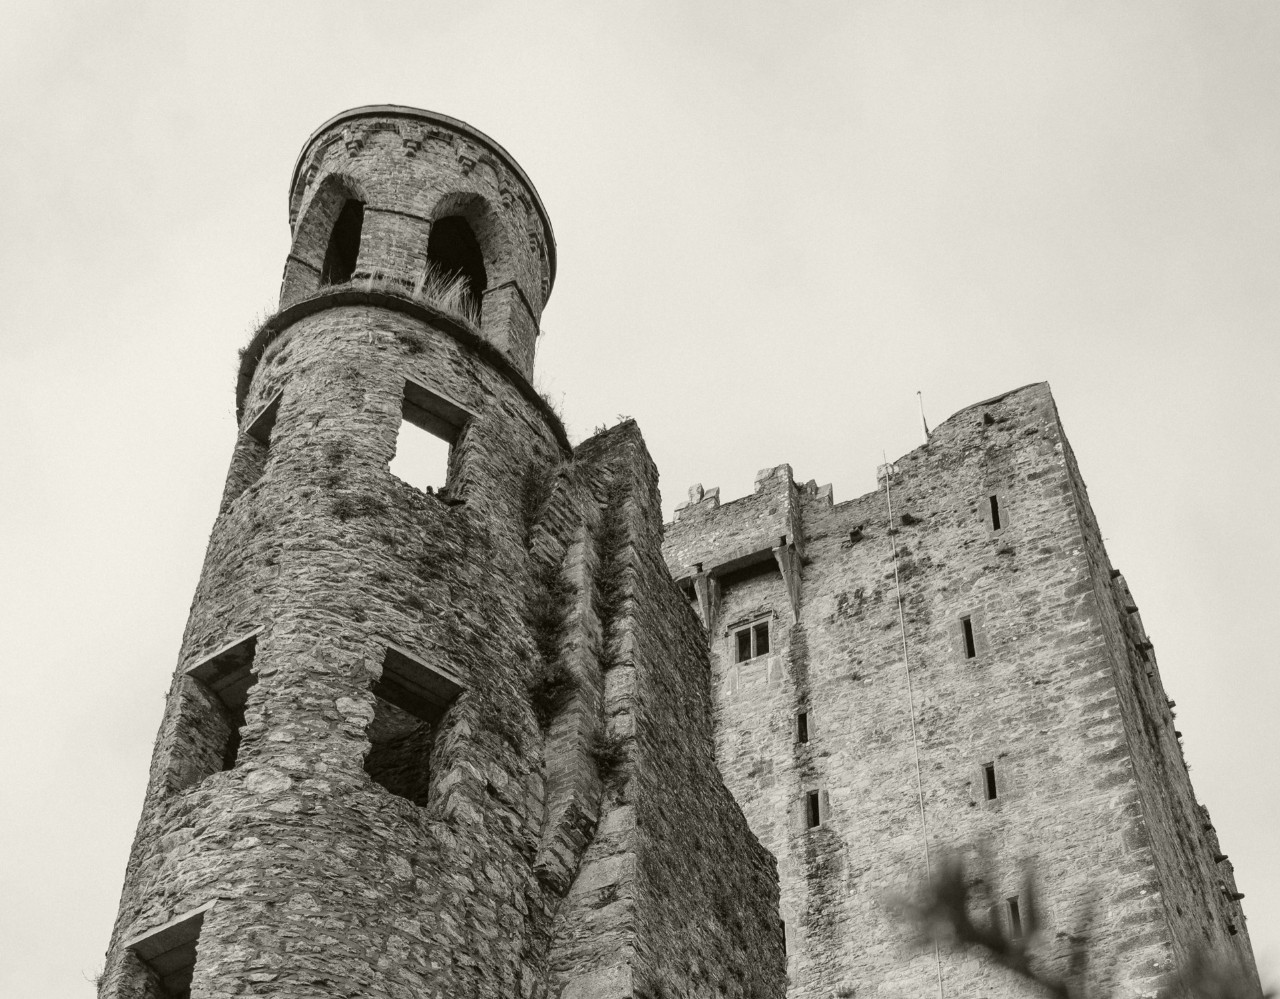 Black and white close up of tower of an Irish castle